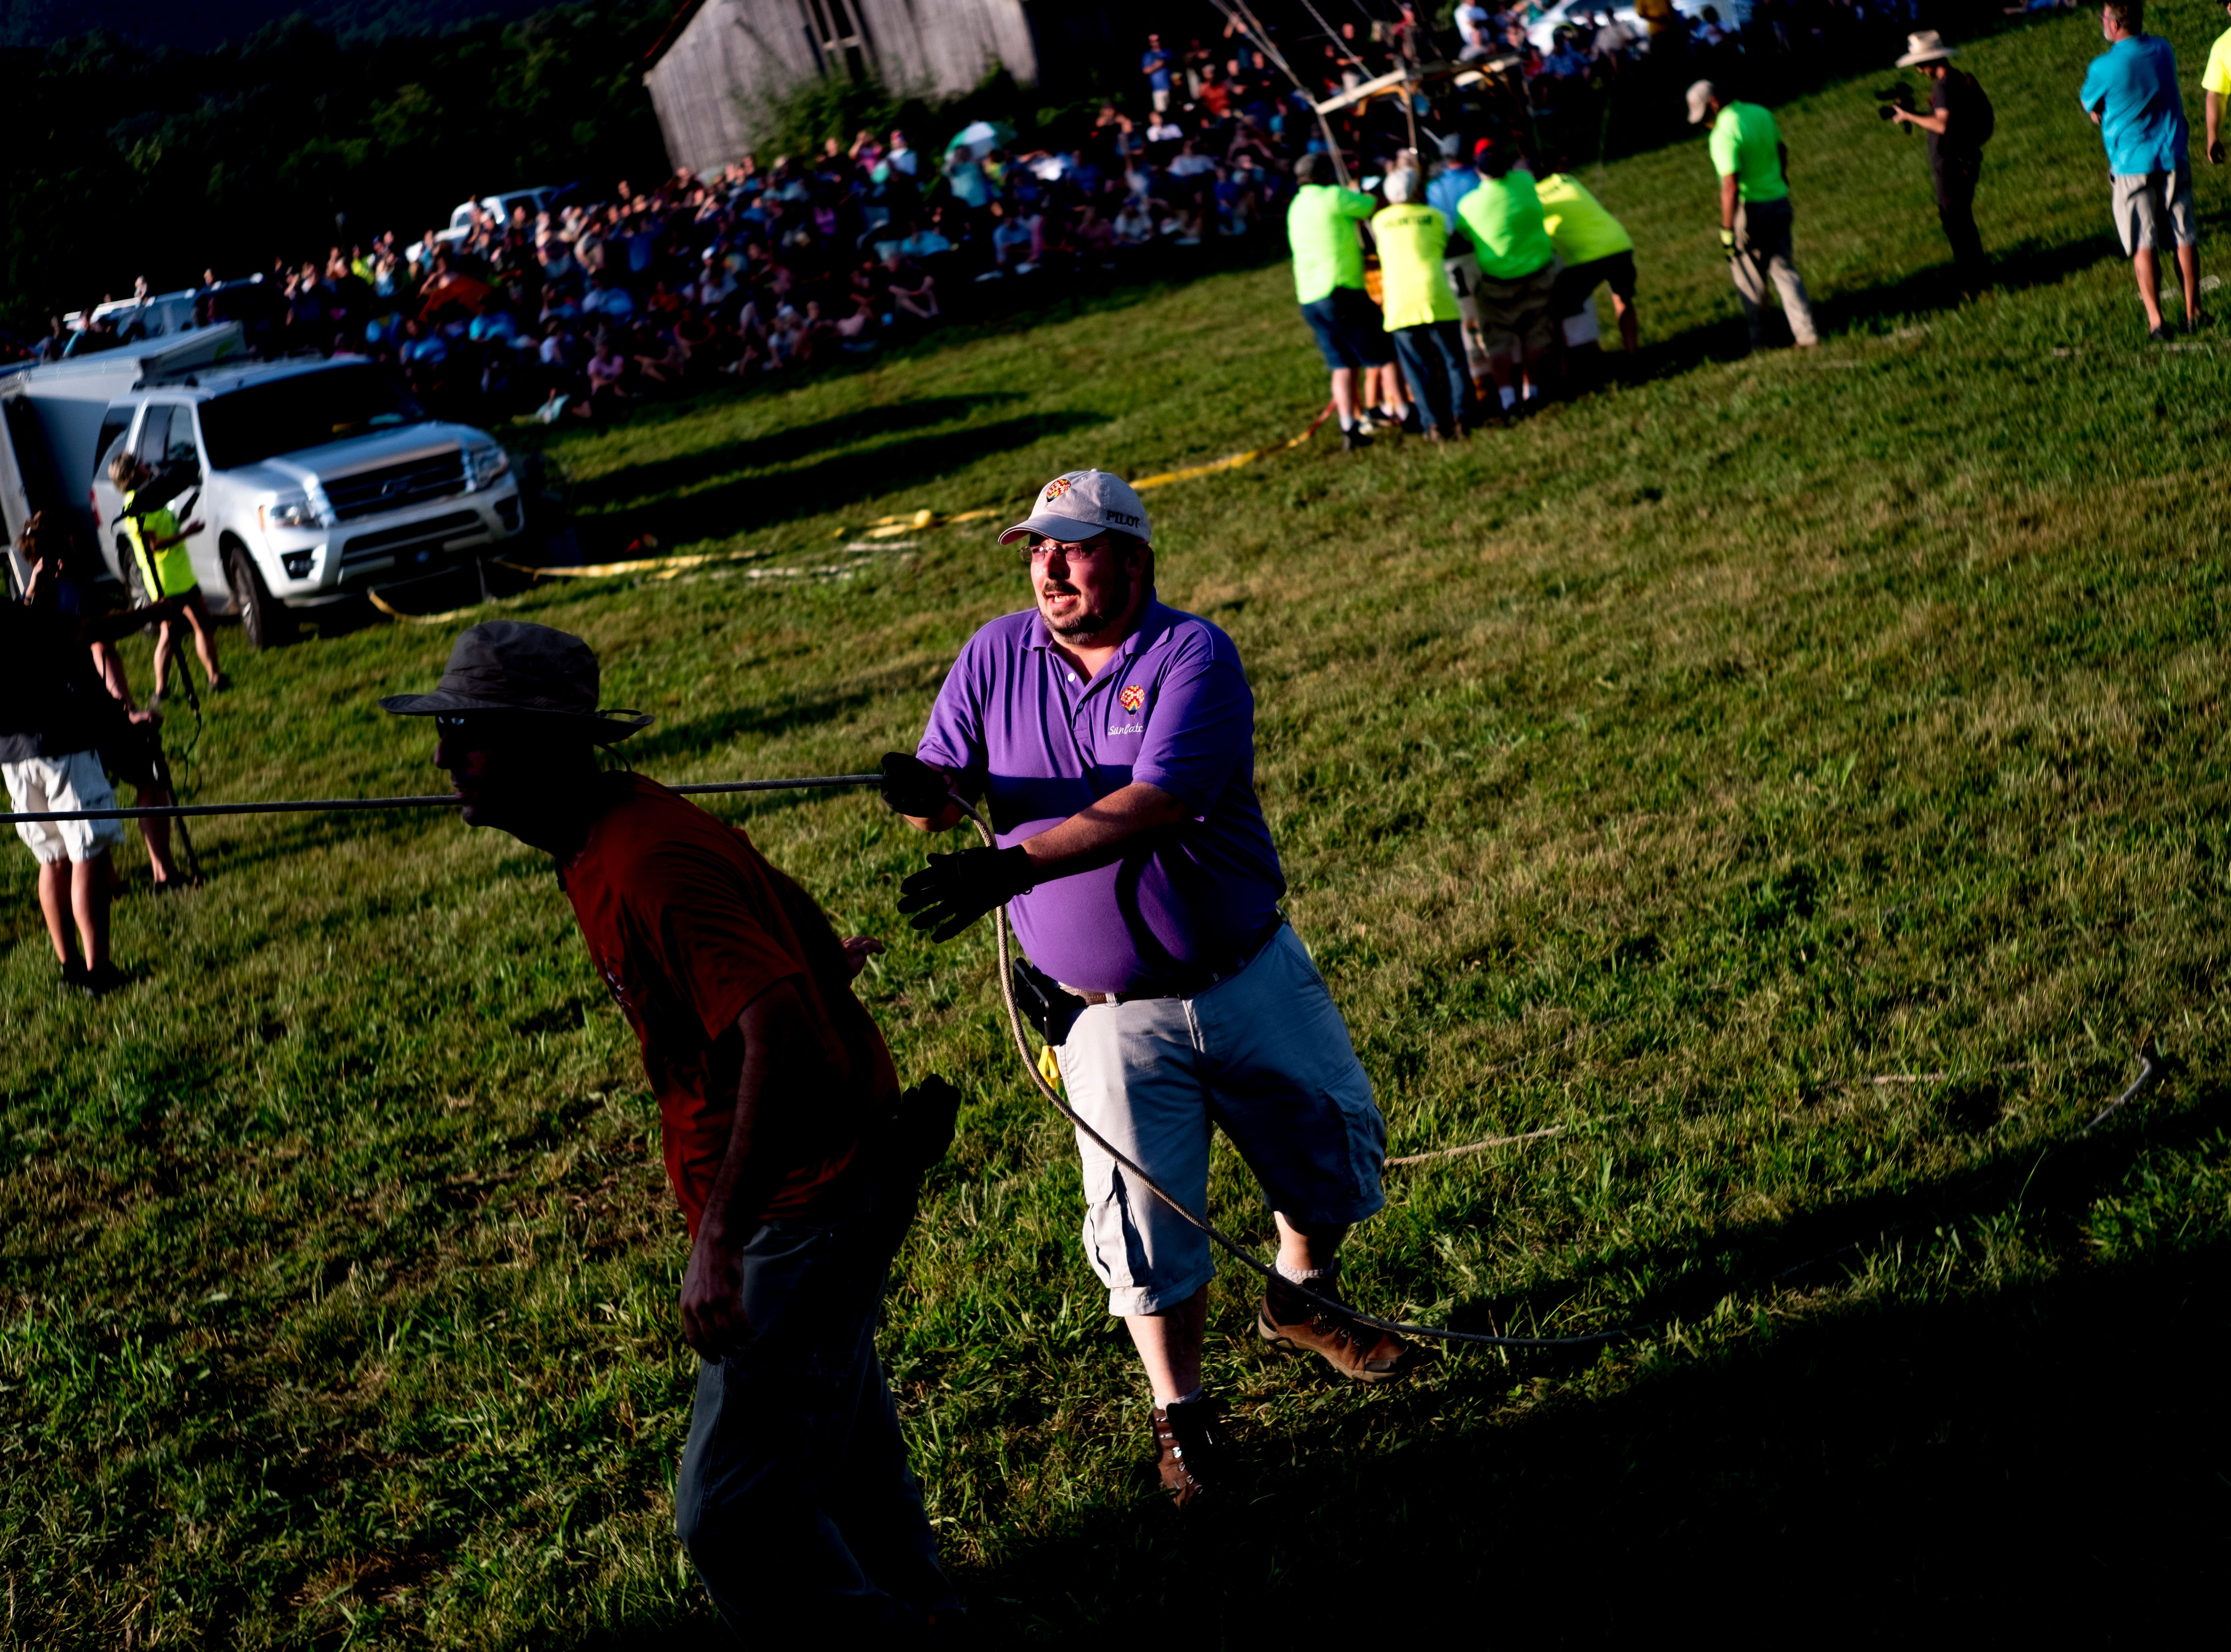 Jospeh Hurdt helps inflate a hot air balloon at the second annual Smoky Mountain Balloon Festival in Townsend, Tennessee on Saturday, August 18, 2018. The festival featured several hot air balloons, food trucks, wine tasting and live entertainment.